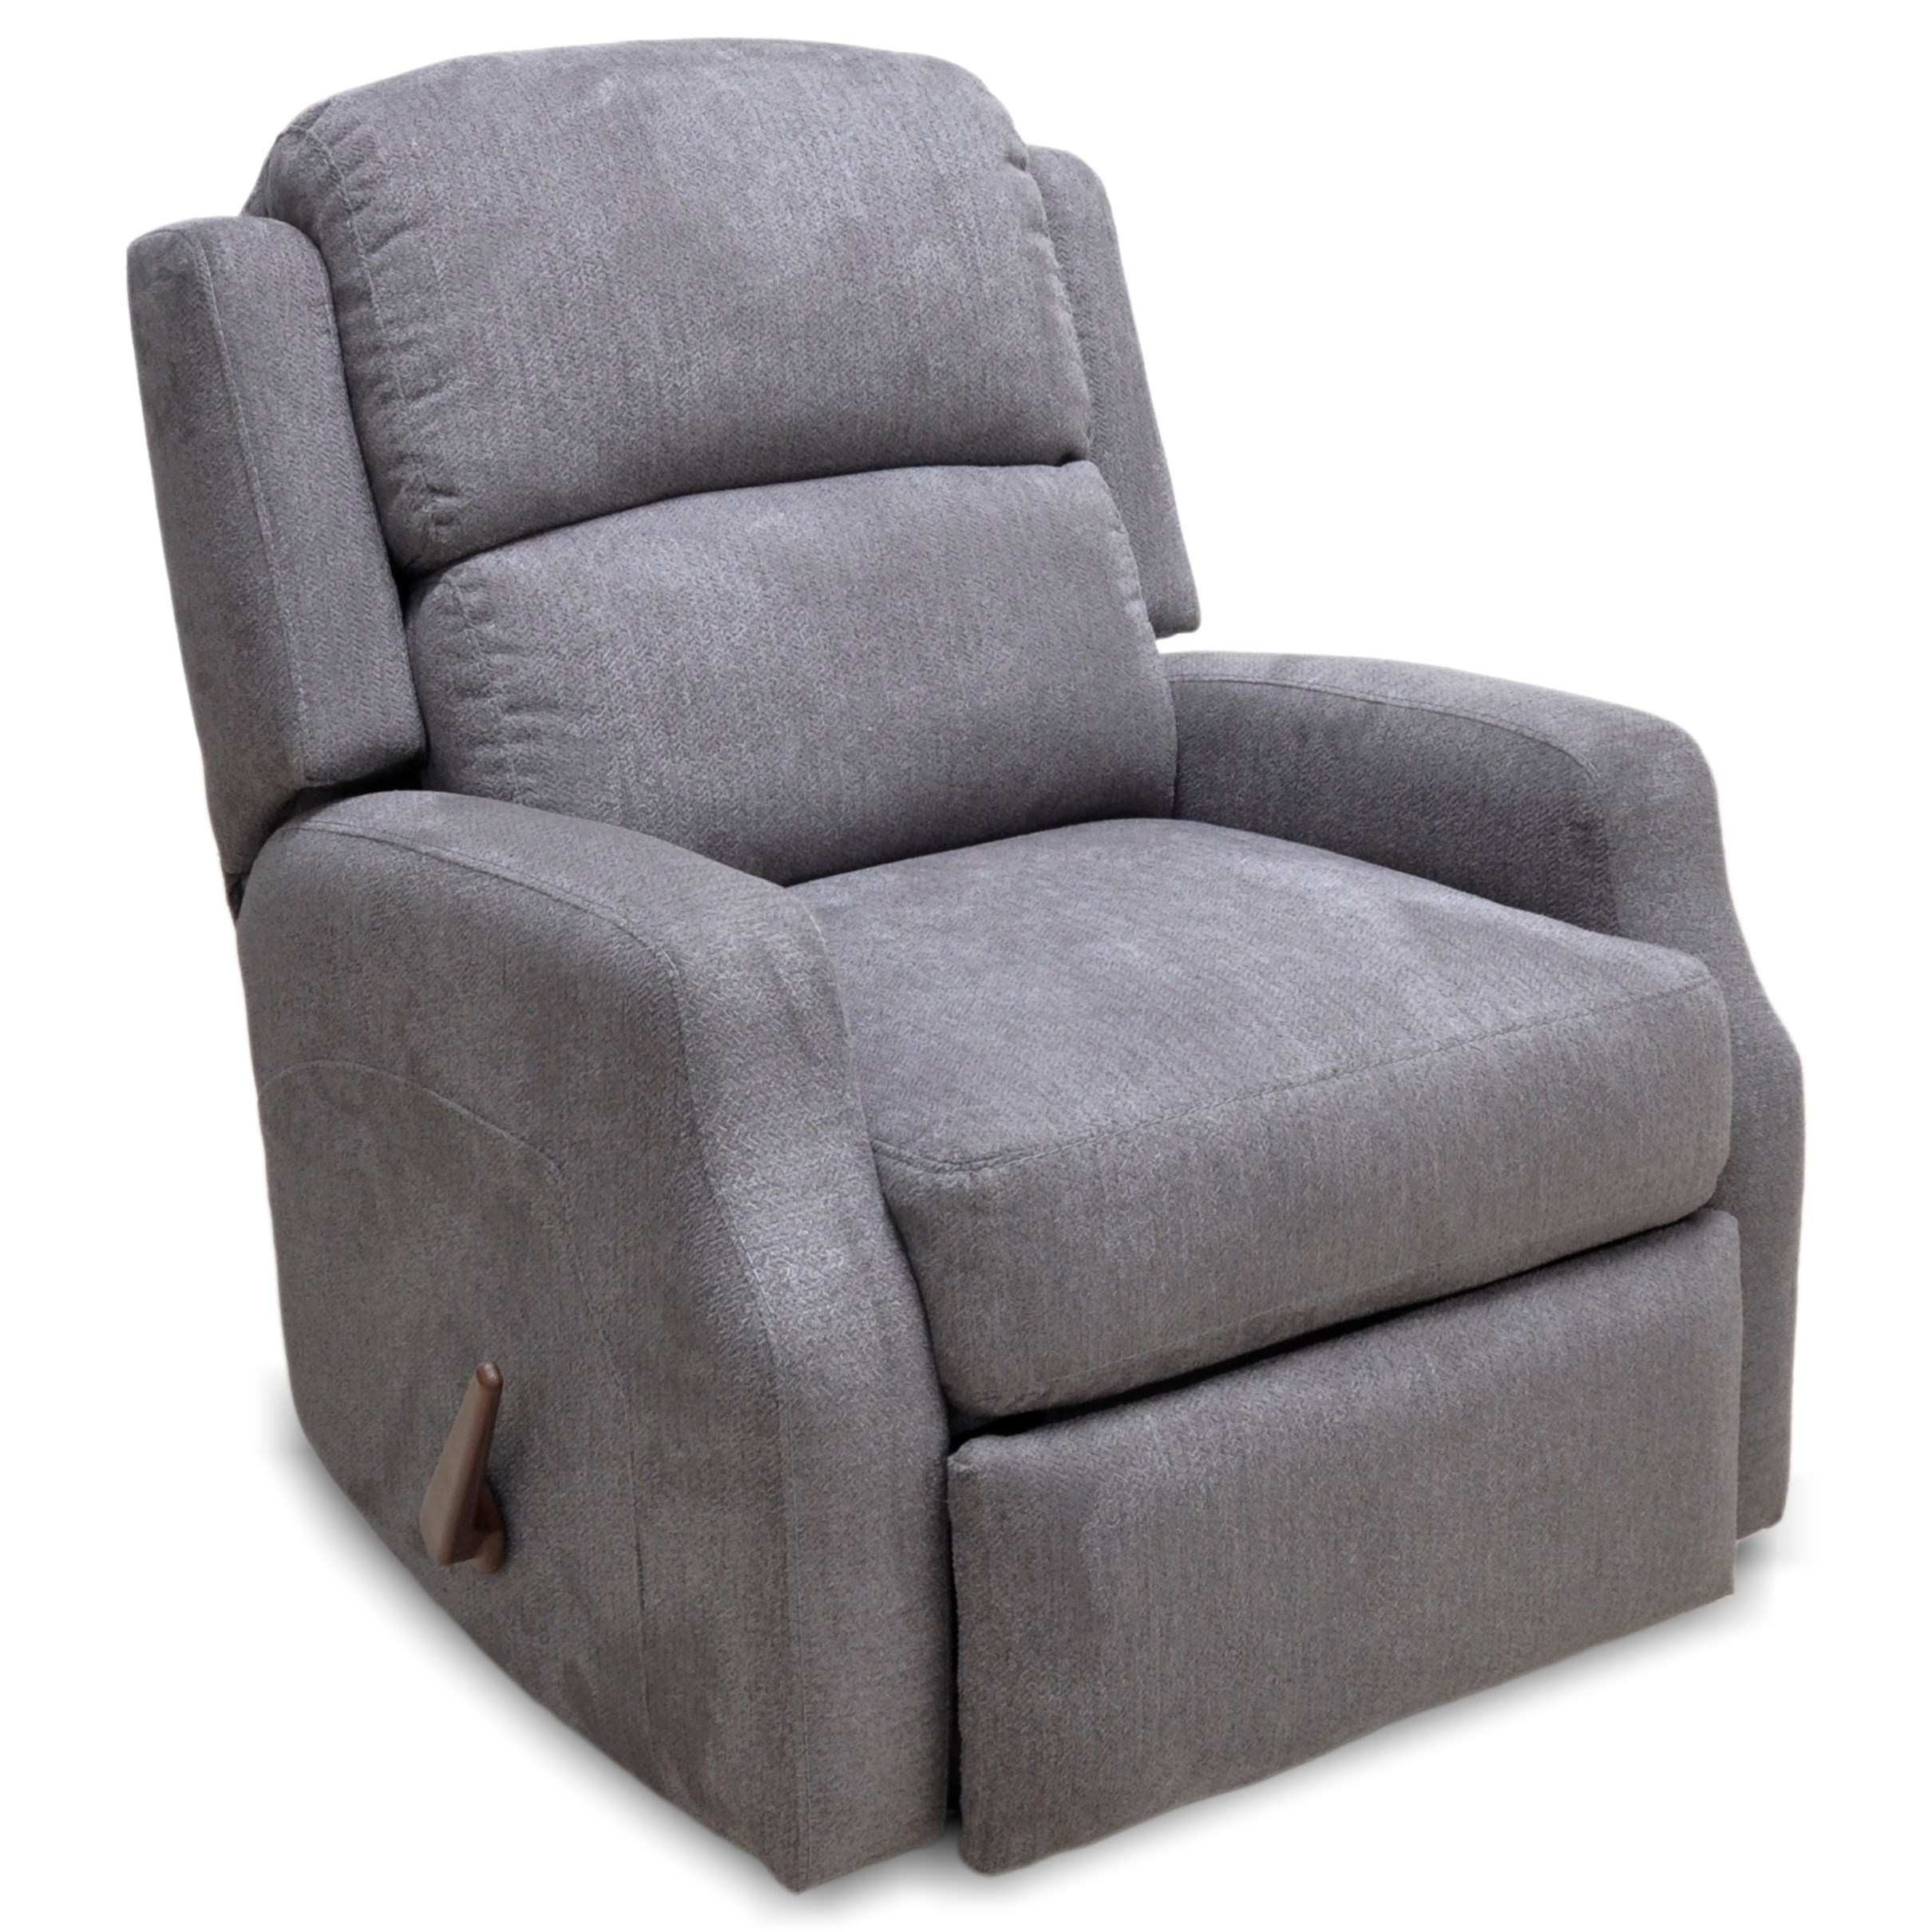 Franklin Recliners Duchess Swivel Rocker Recliner by Franklin at Turk Furniture